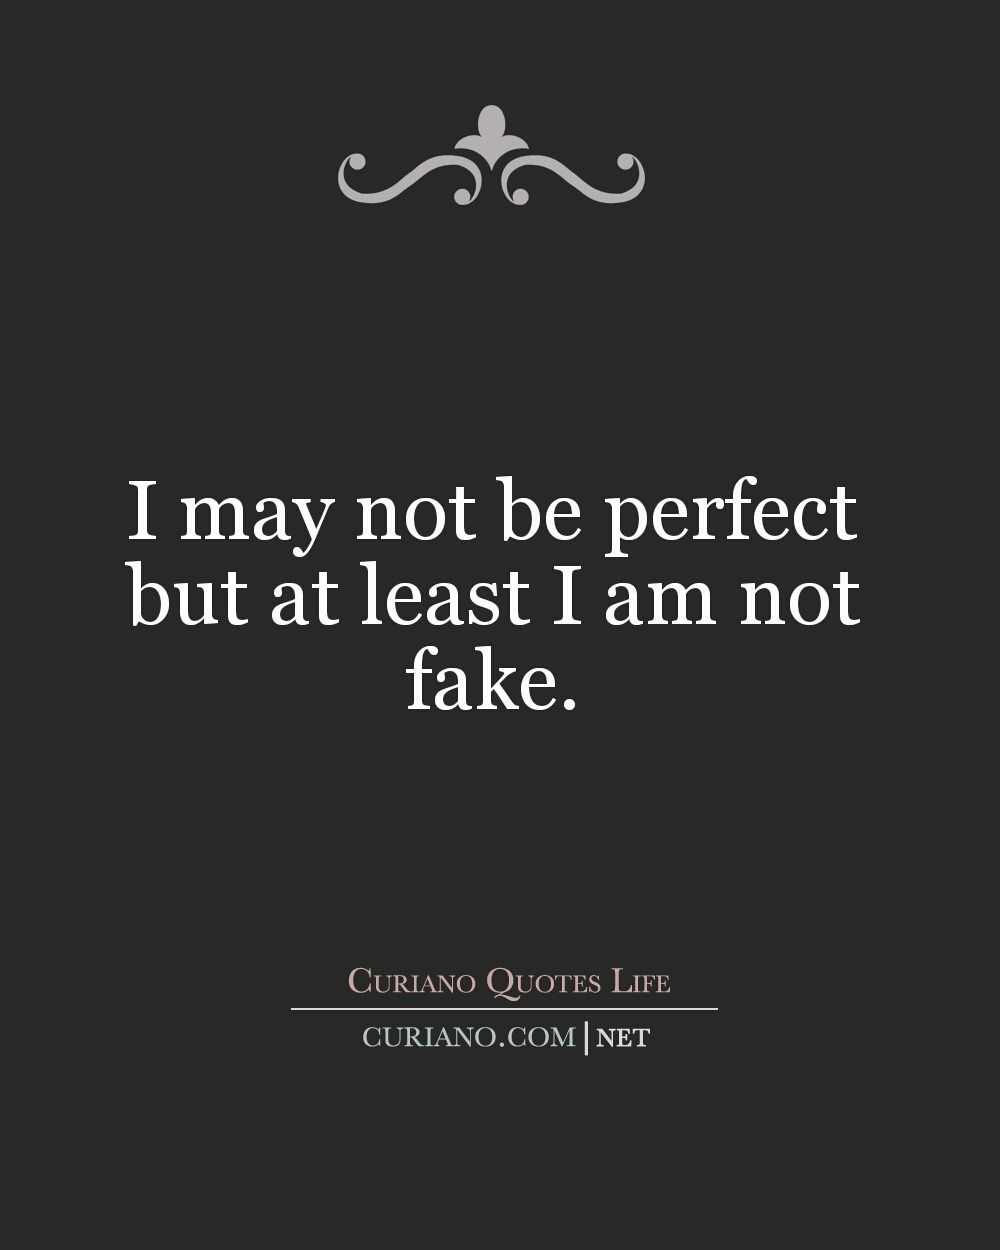 Favorite Quotes About Life This Blog Curiano Quotes Life Shows Quotes Best Life Quote